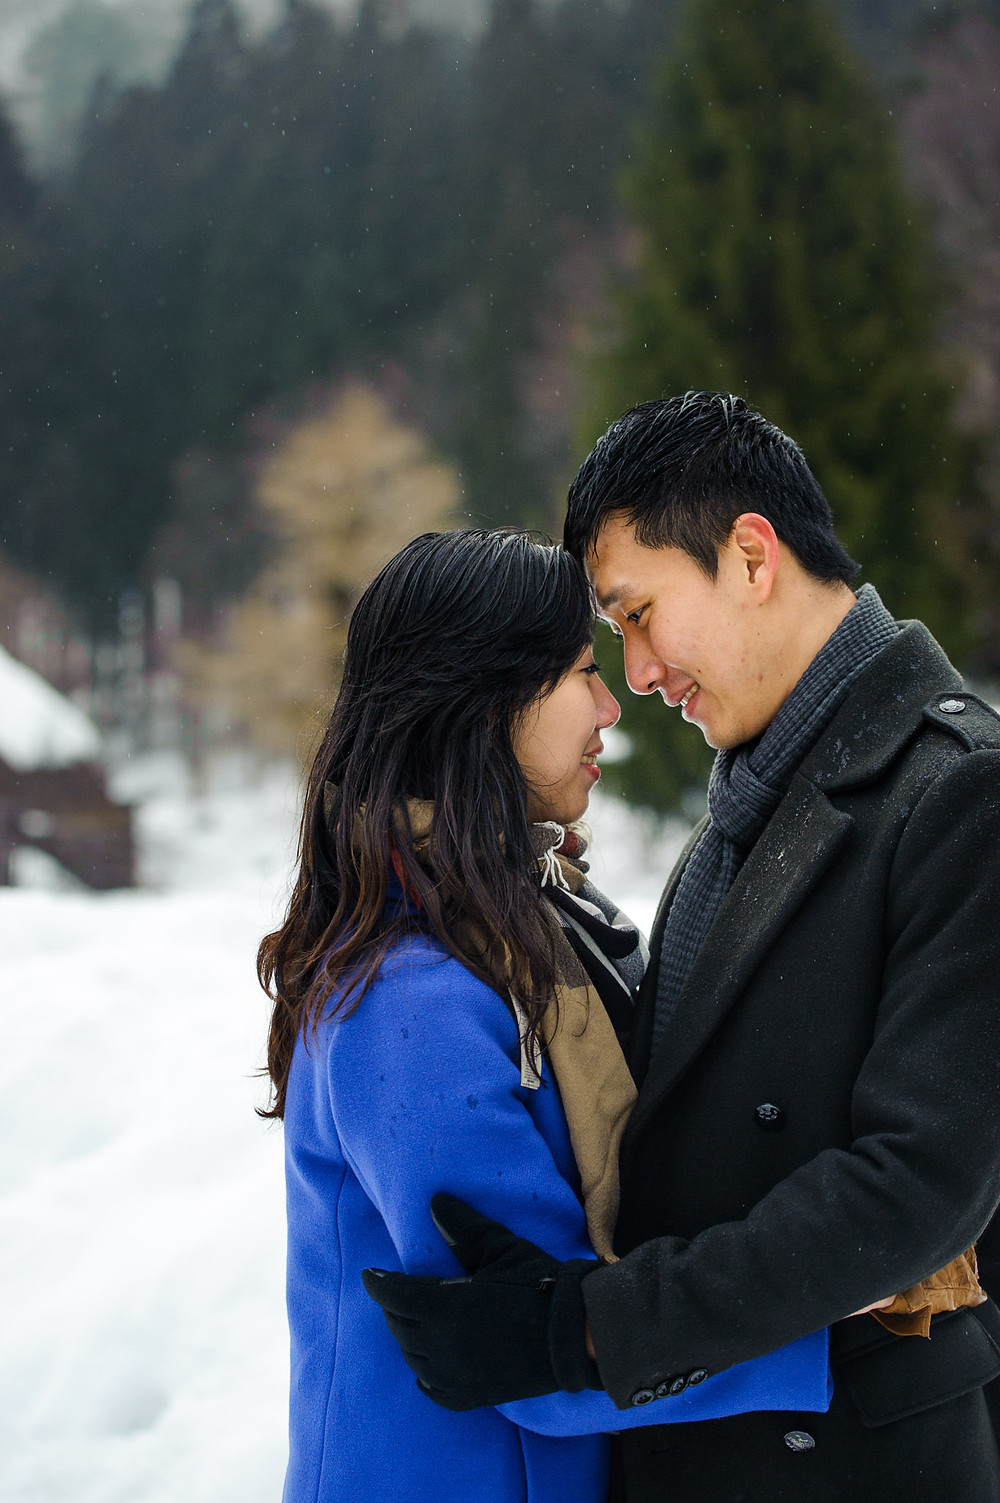 Sin looks lovingly at his fiancée in Shirakawago